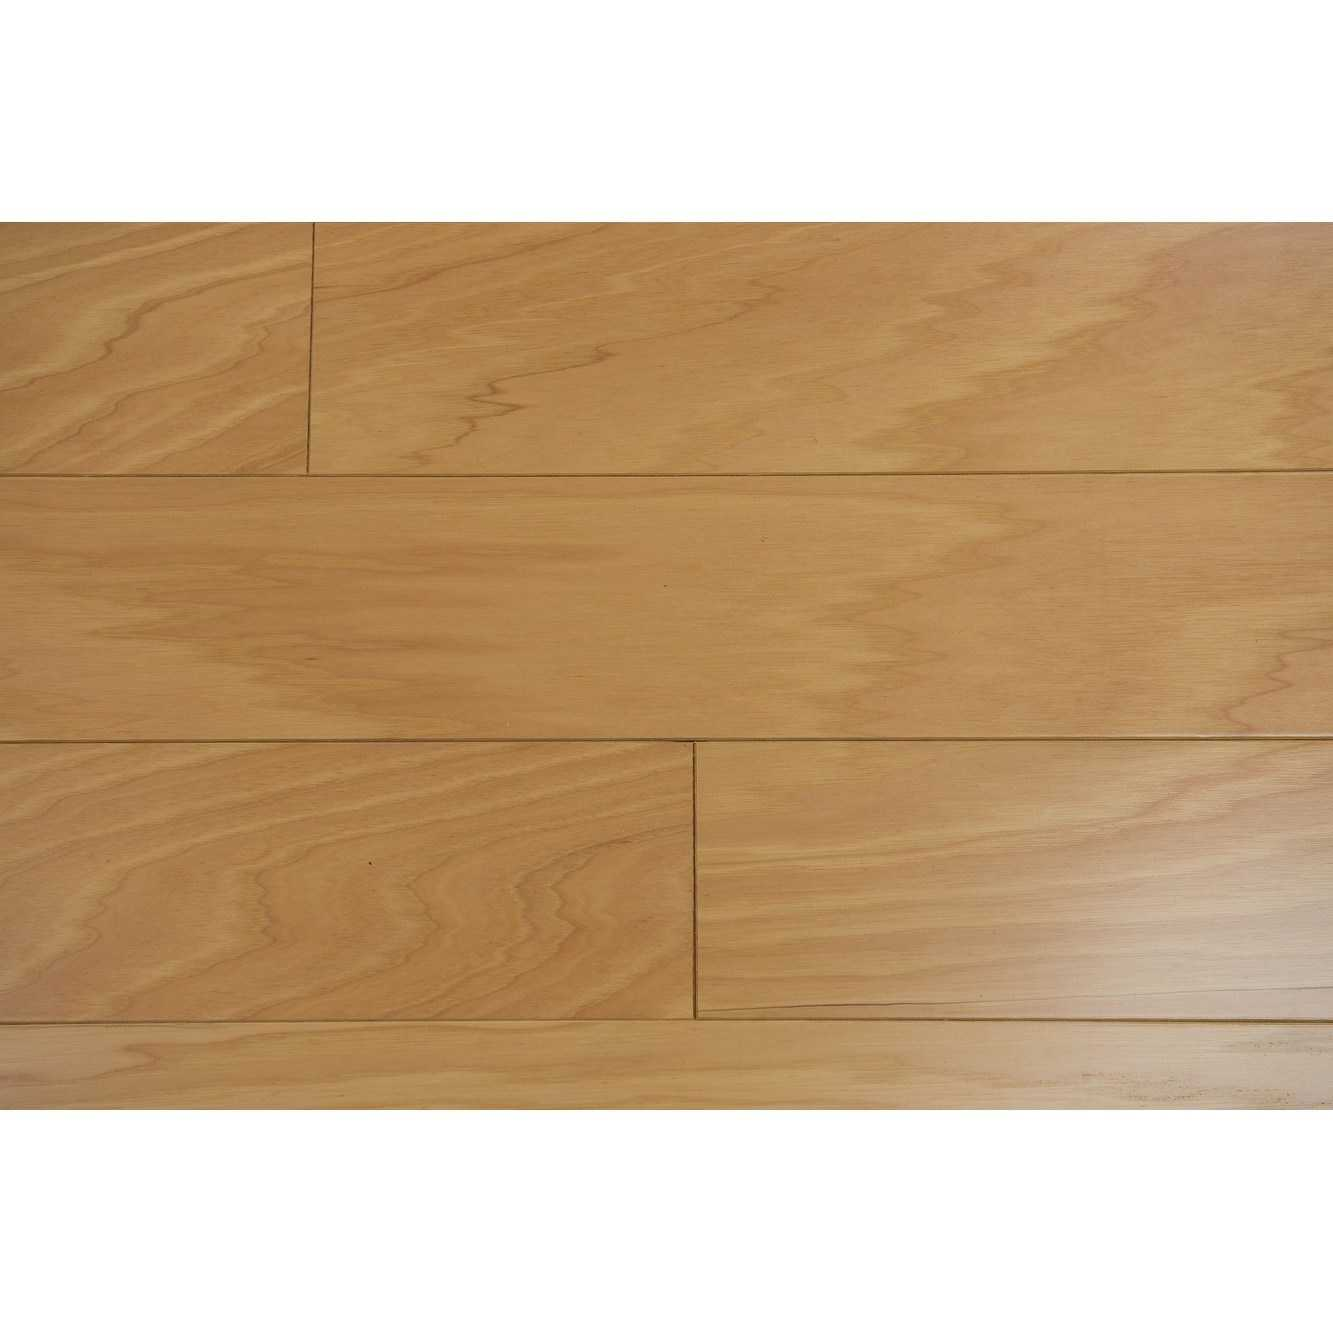 Hudson Collection Engineered Hardwood in Natural Red Oak - 3/8' X 5' (24.5sqft/case)